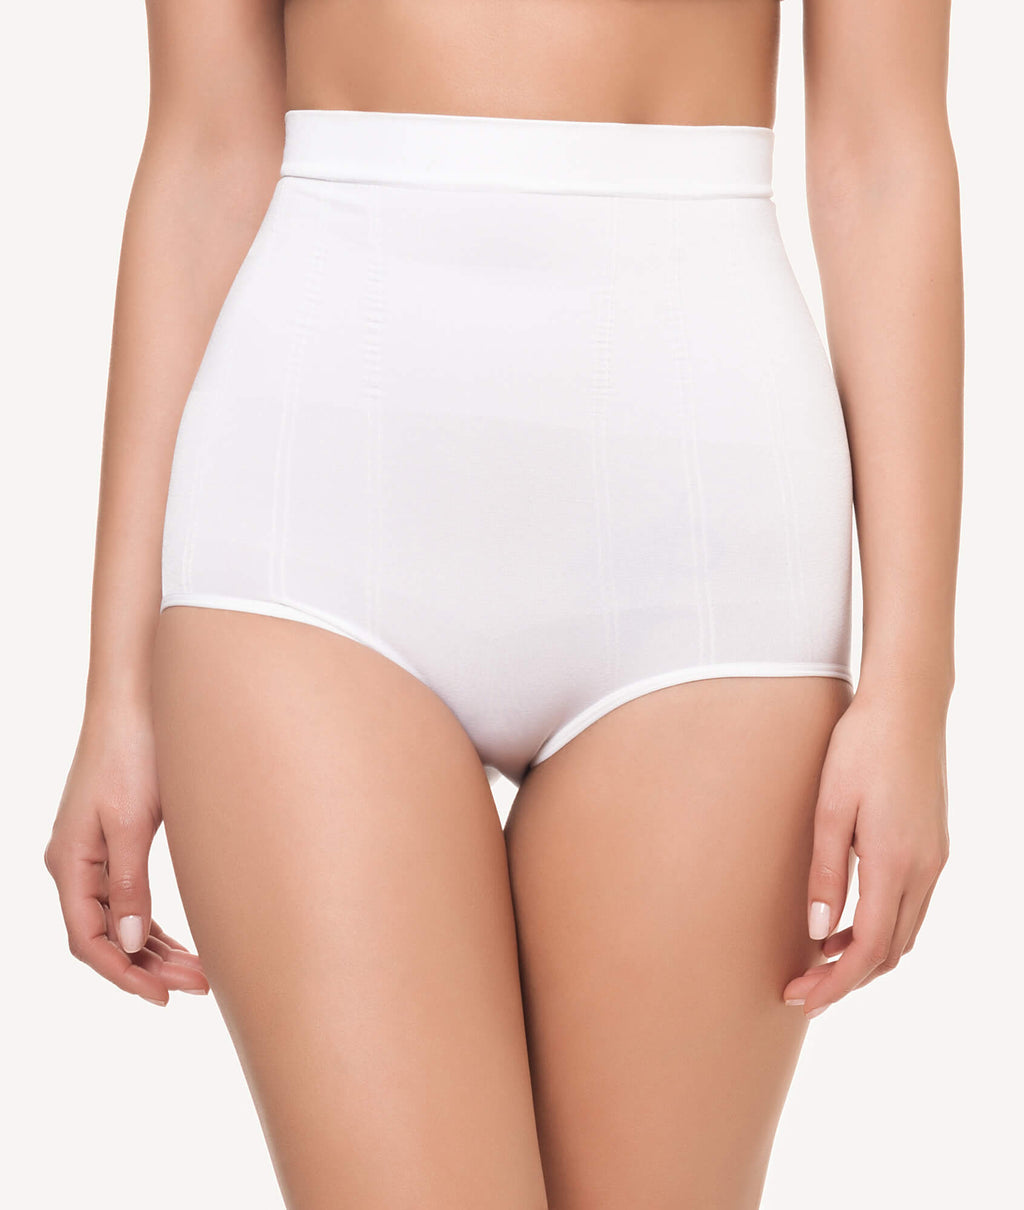 Braga faja reductora con rayas sin costuras blanco frontal - CHANNO Woman